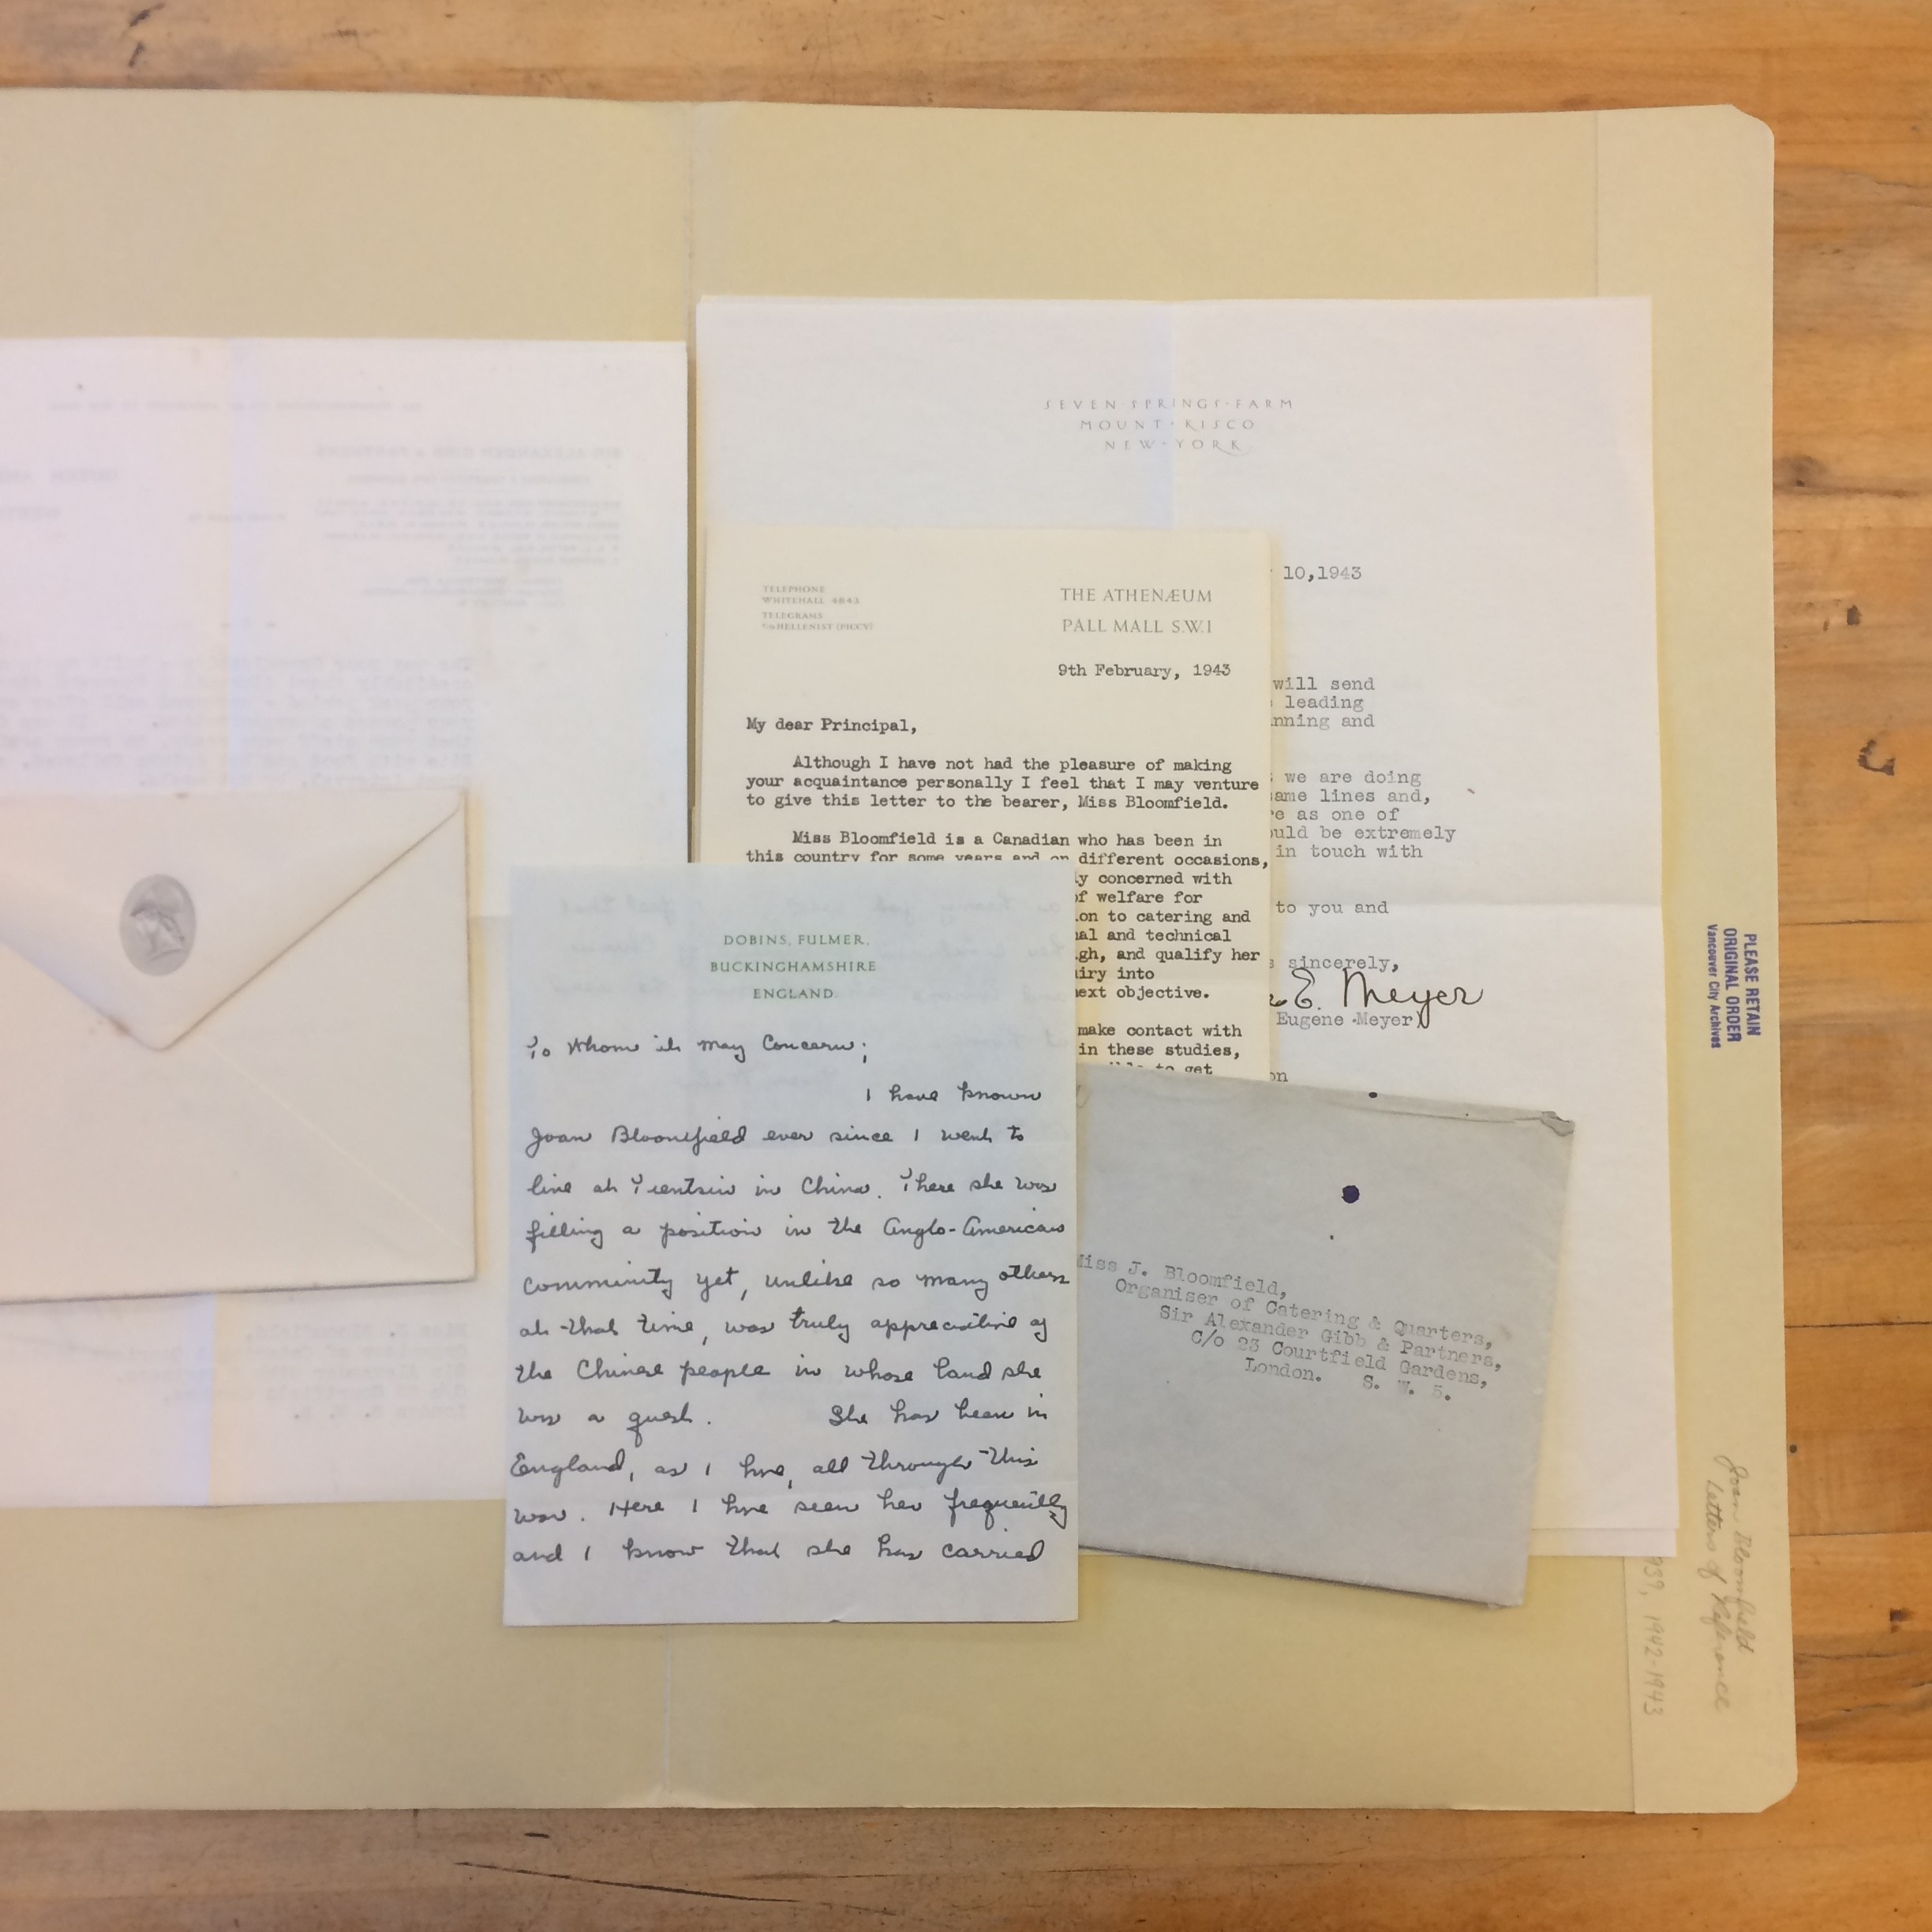 Letters of reference for Joan Bloomfield, 1939-1943. Reference code: AM973-S6--. Photo by Bronwyn Smyth